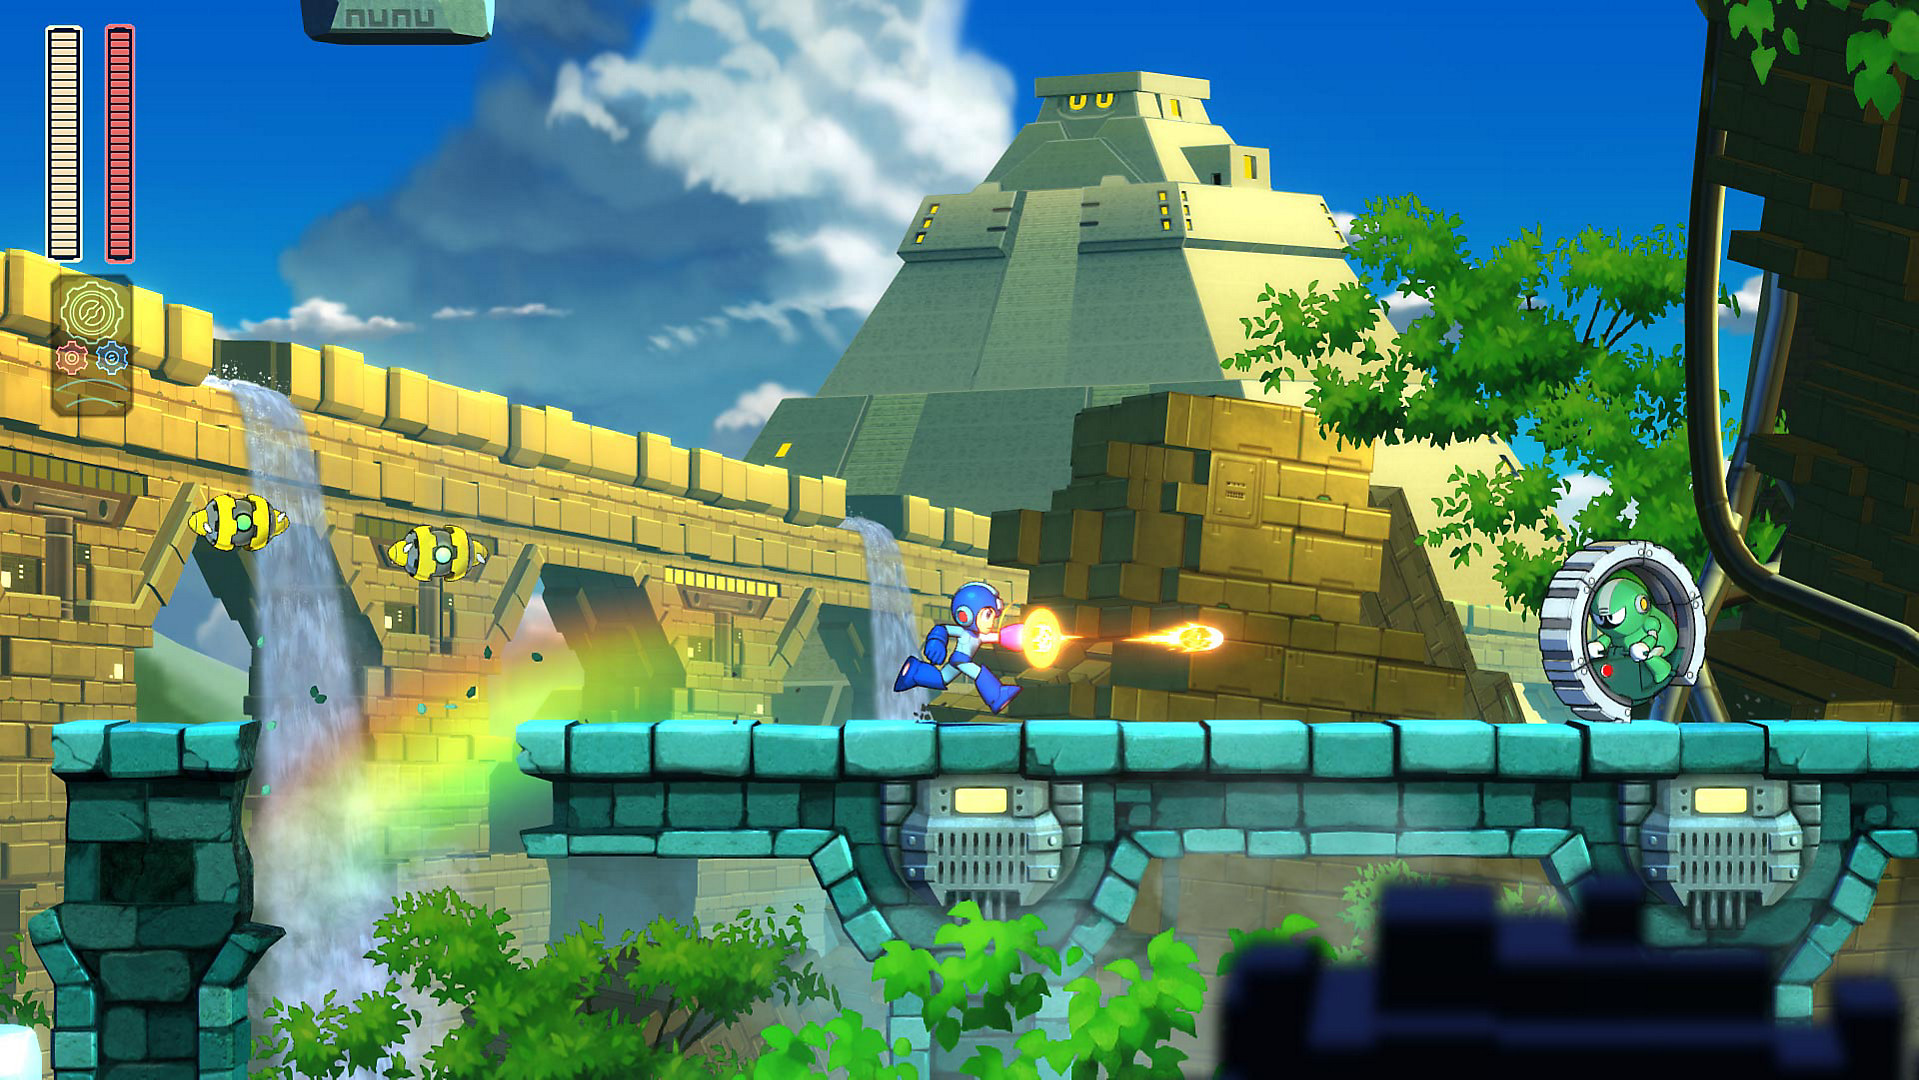 mega-man-11-screenshot-02-ps4-us-02oct20